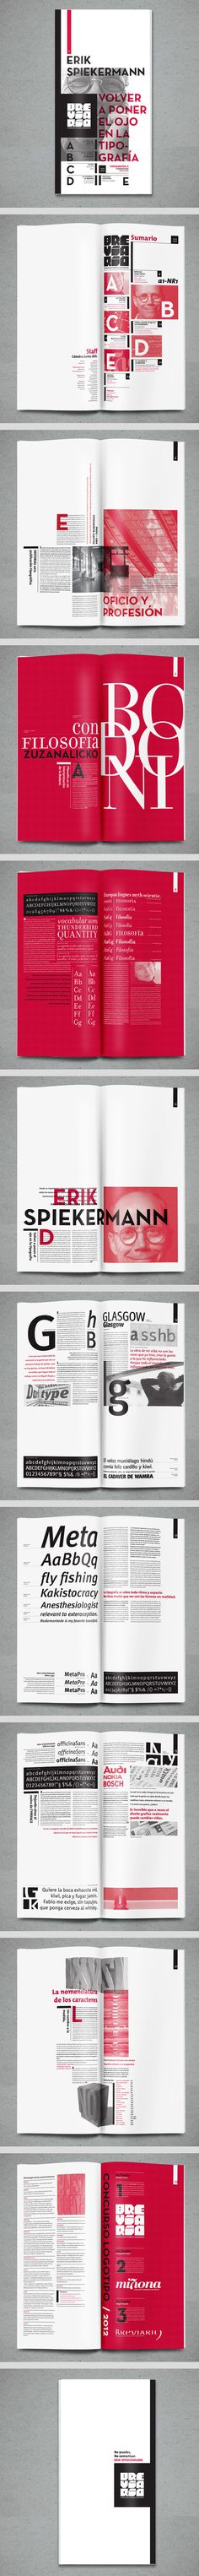 Brevario by Daniel Varela | Media as art | print (book, magazine, newspaper) + typography + editorial + layout + design |